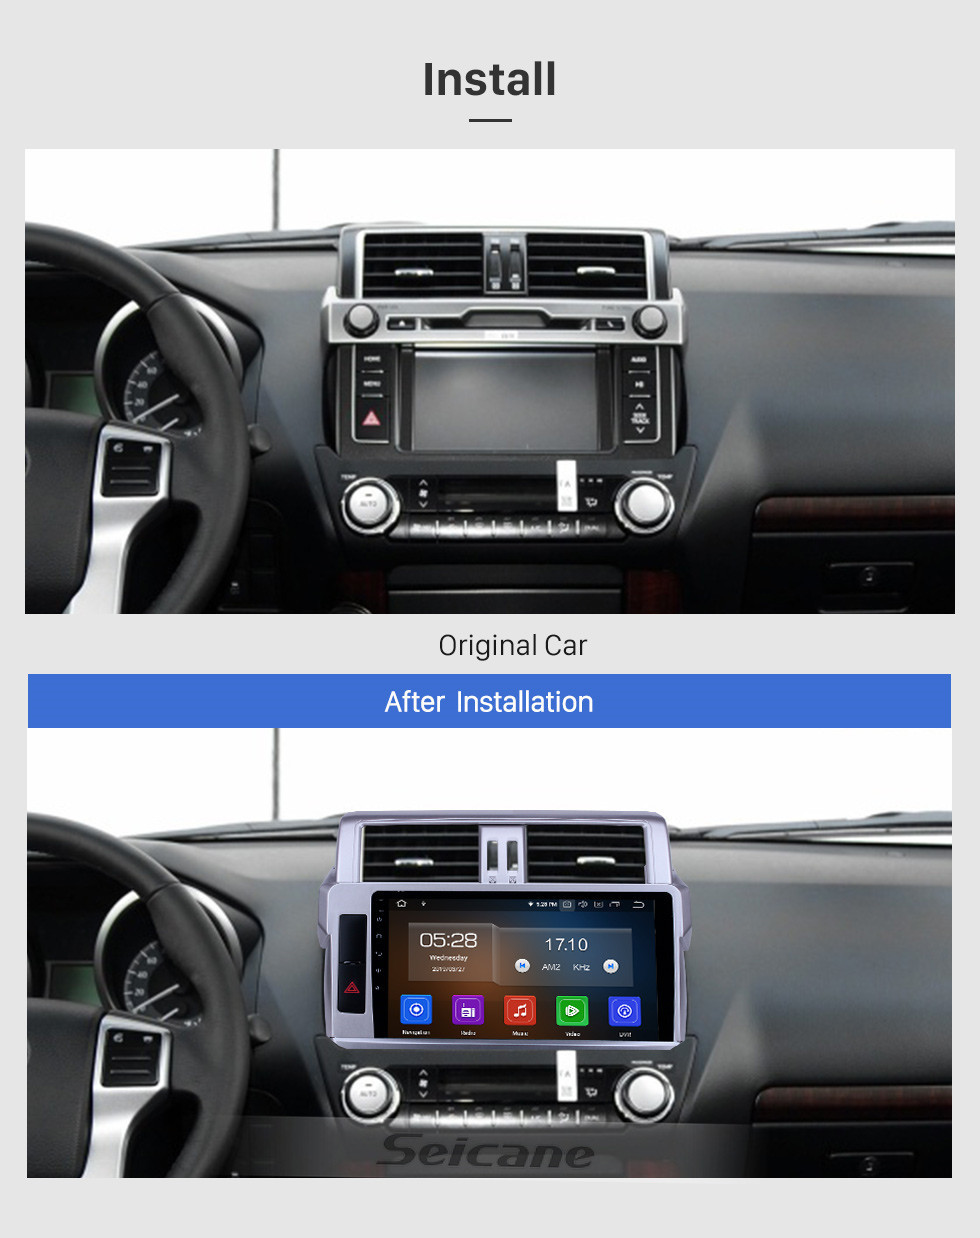 Seicane Android 10.0 10.1 inch GPS Navigation Radio for 2014 Toyota Prado with HD Touchscreen Carplay Bluetooth support Digital TV